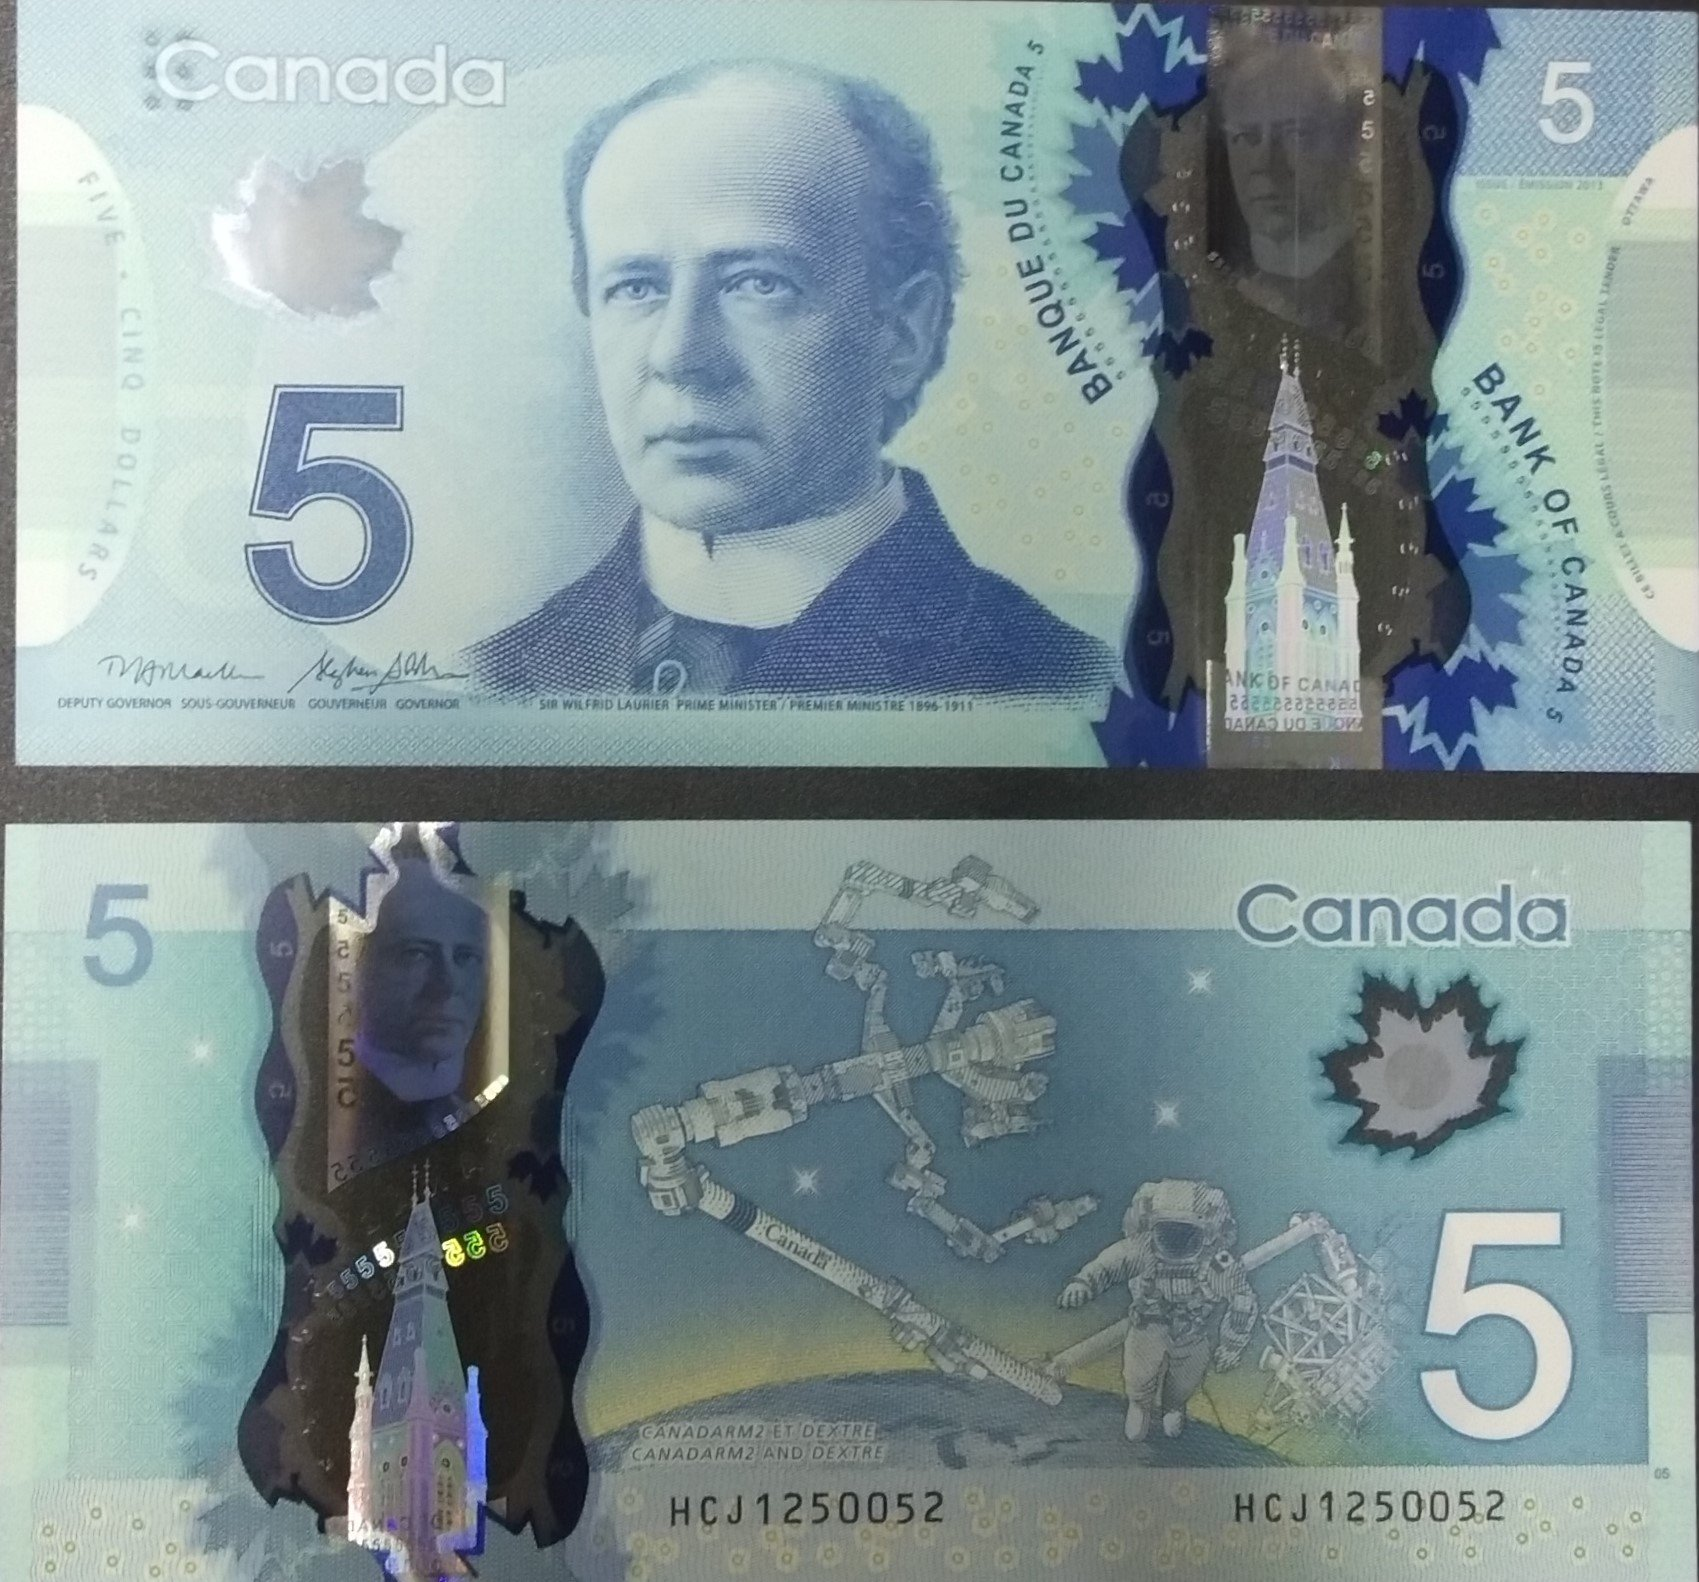 Canada 5 dollars polymer banknote for sale